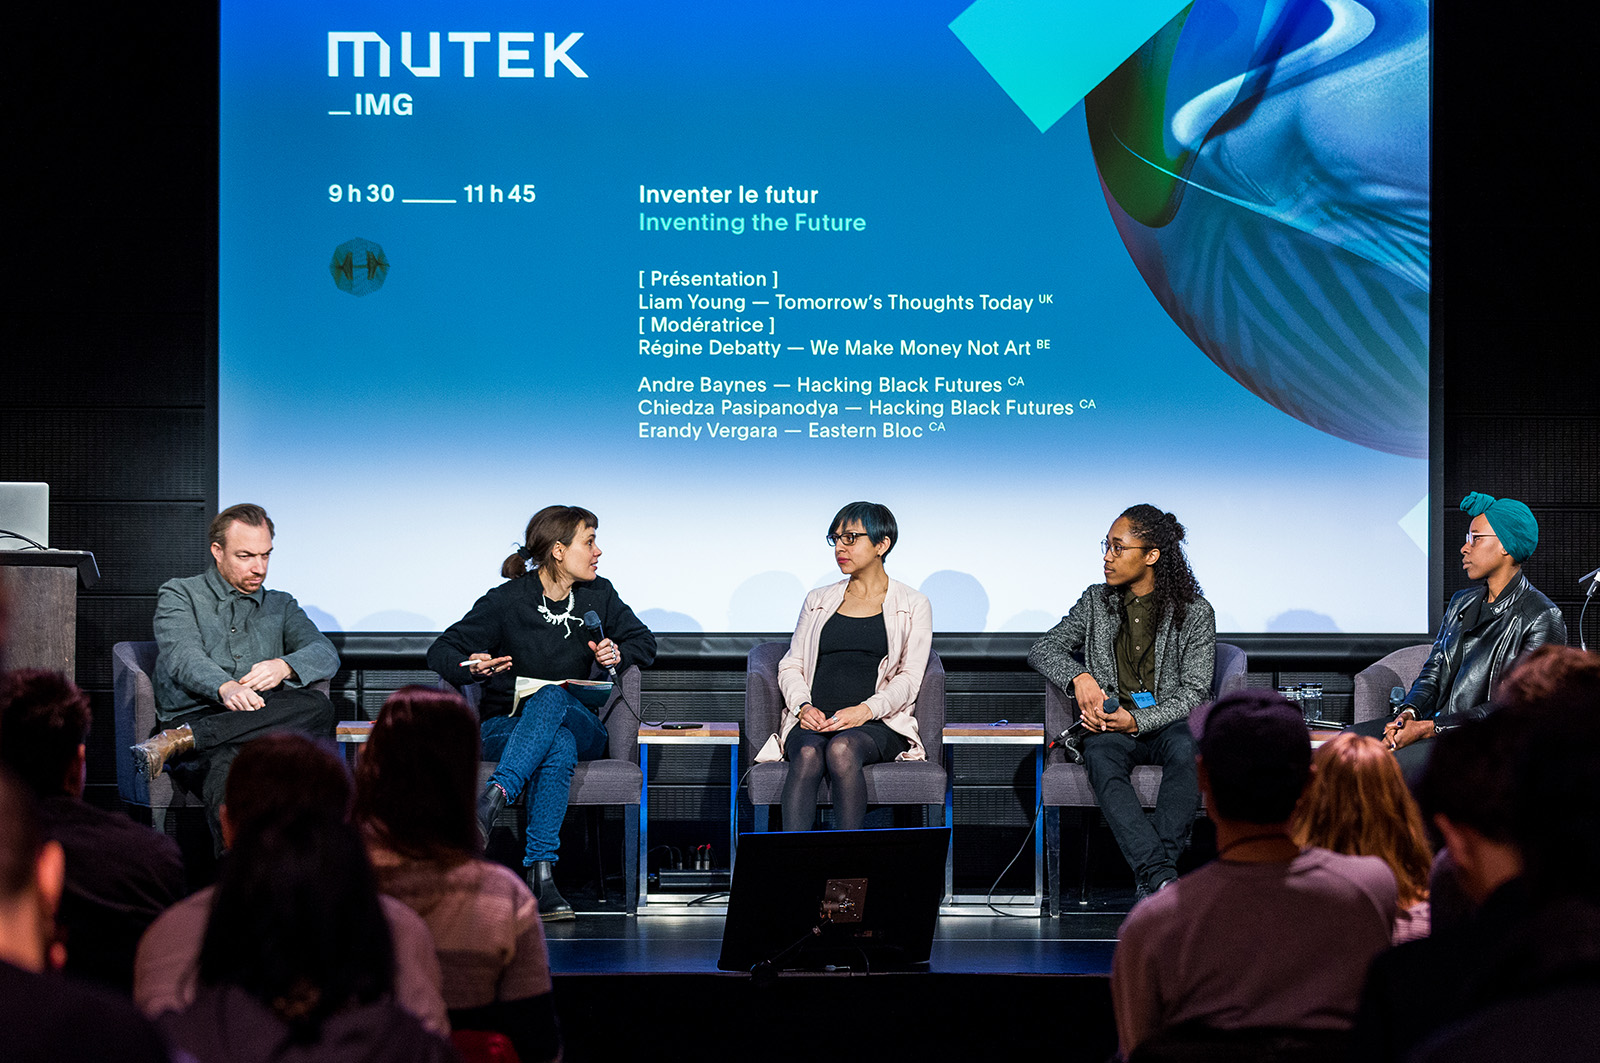 Mutek IMG Festival 2018 - Inventing the future presentation and panel